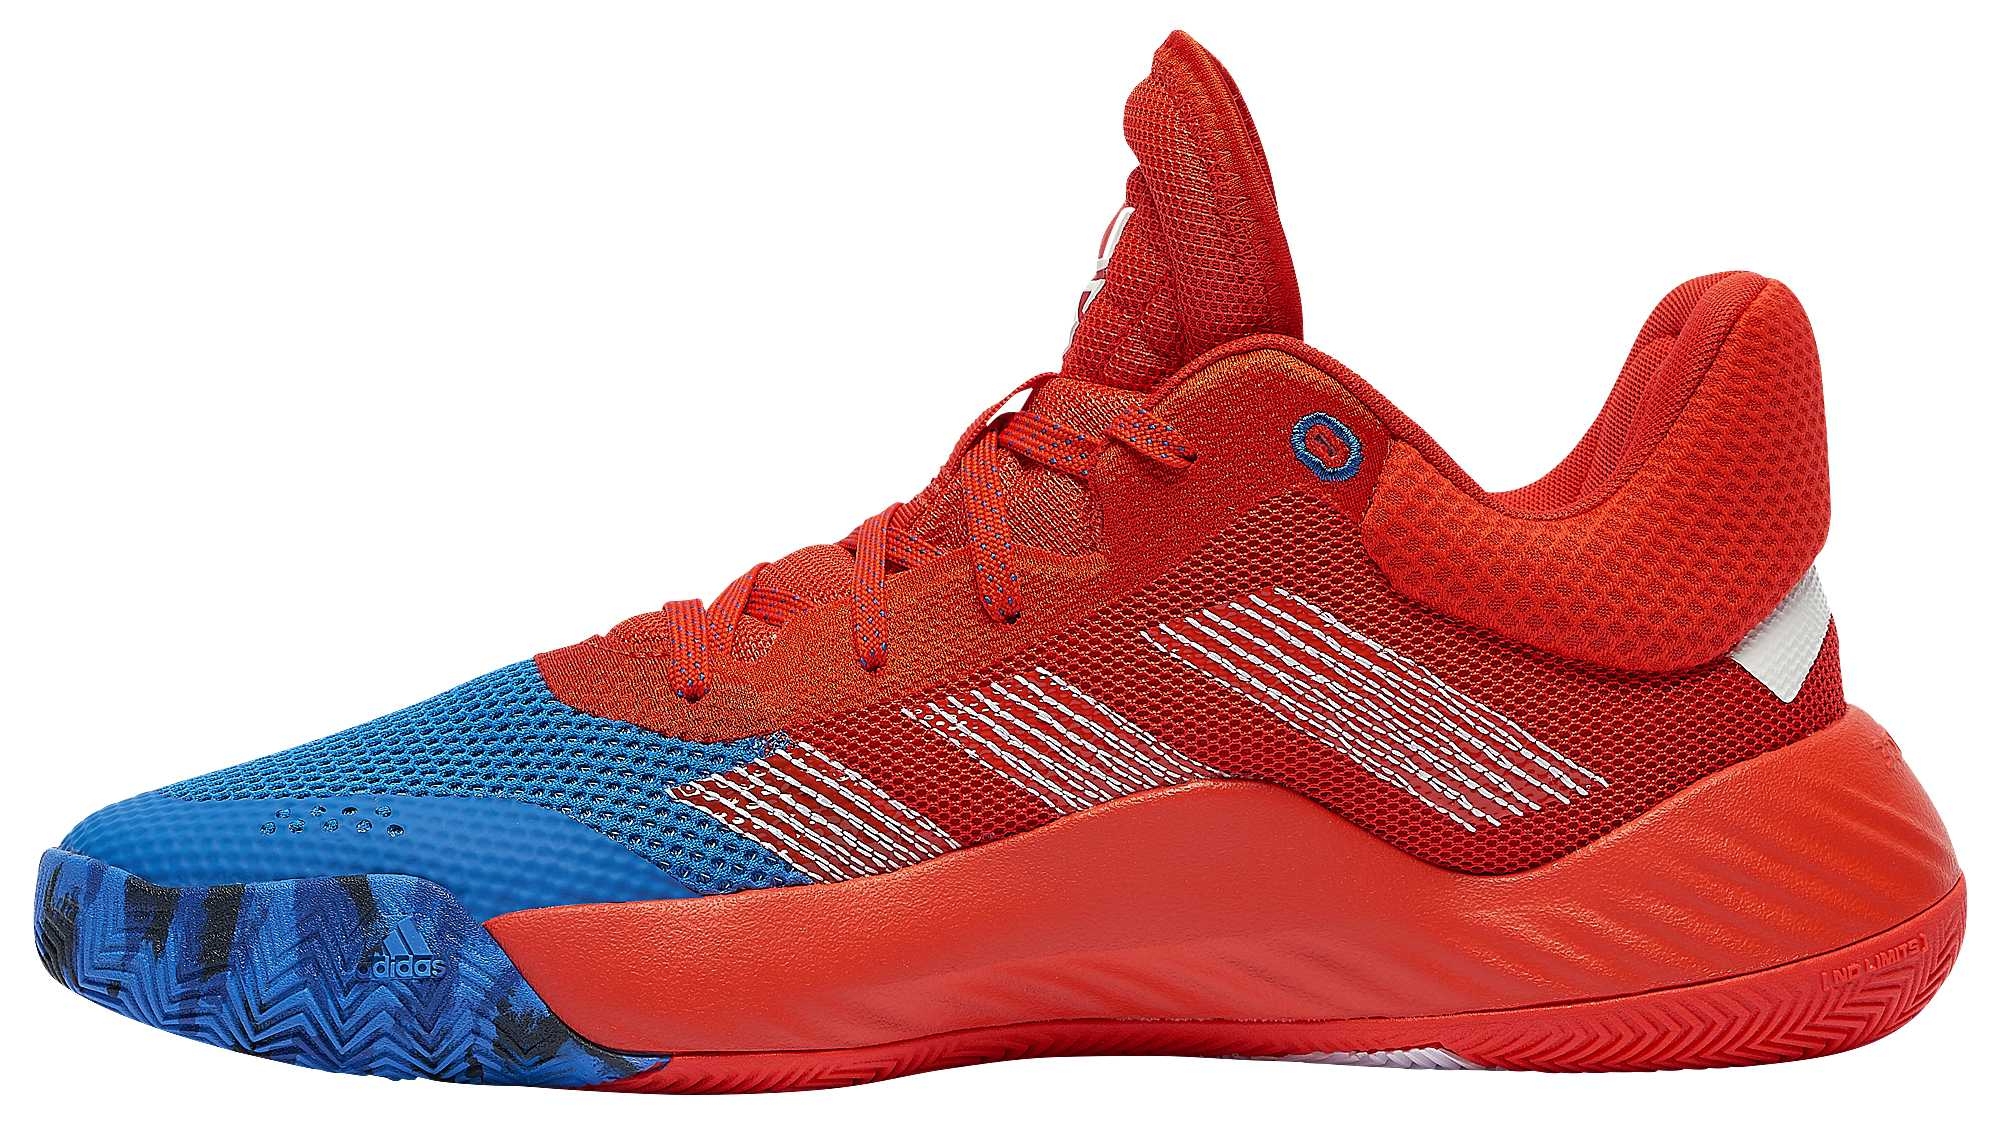 Adidas D.O.N. Issue 1 Blue Red White Release Date EF2400 Medial